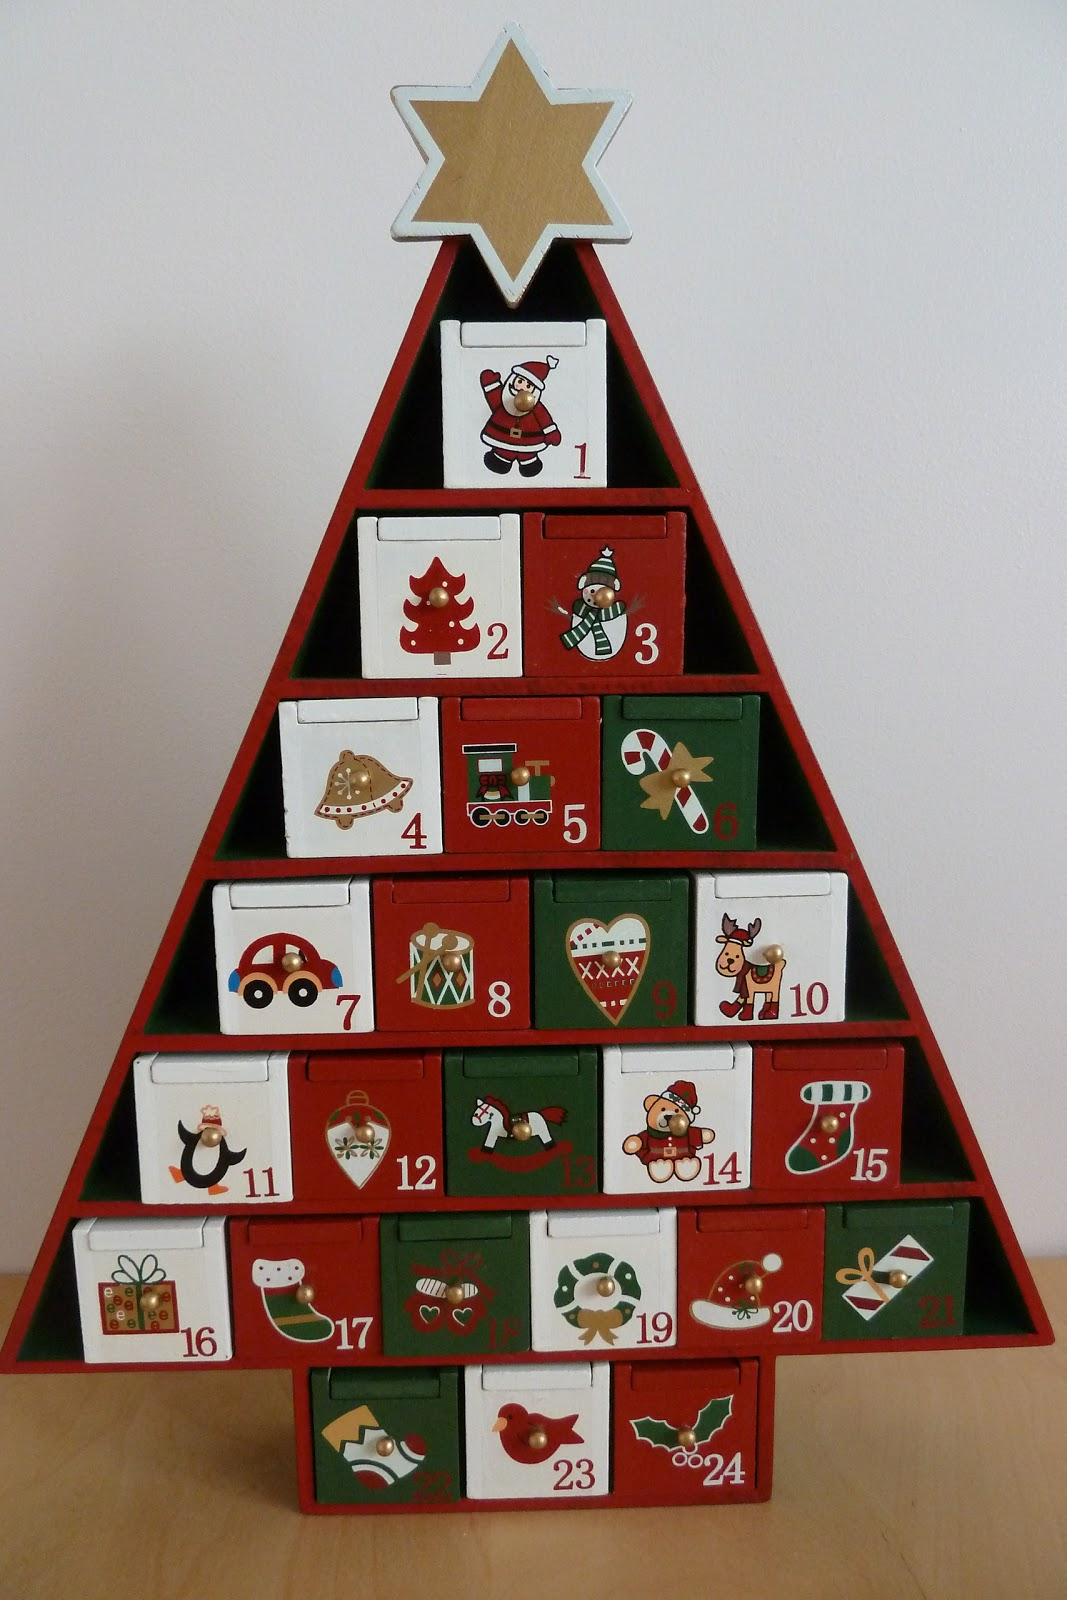 Advent Calendar Ideas What To Put In : Jennifer s little world parenting craft and travel